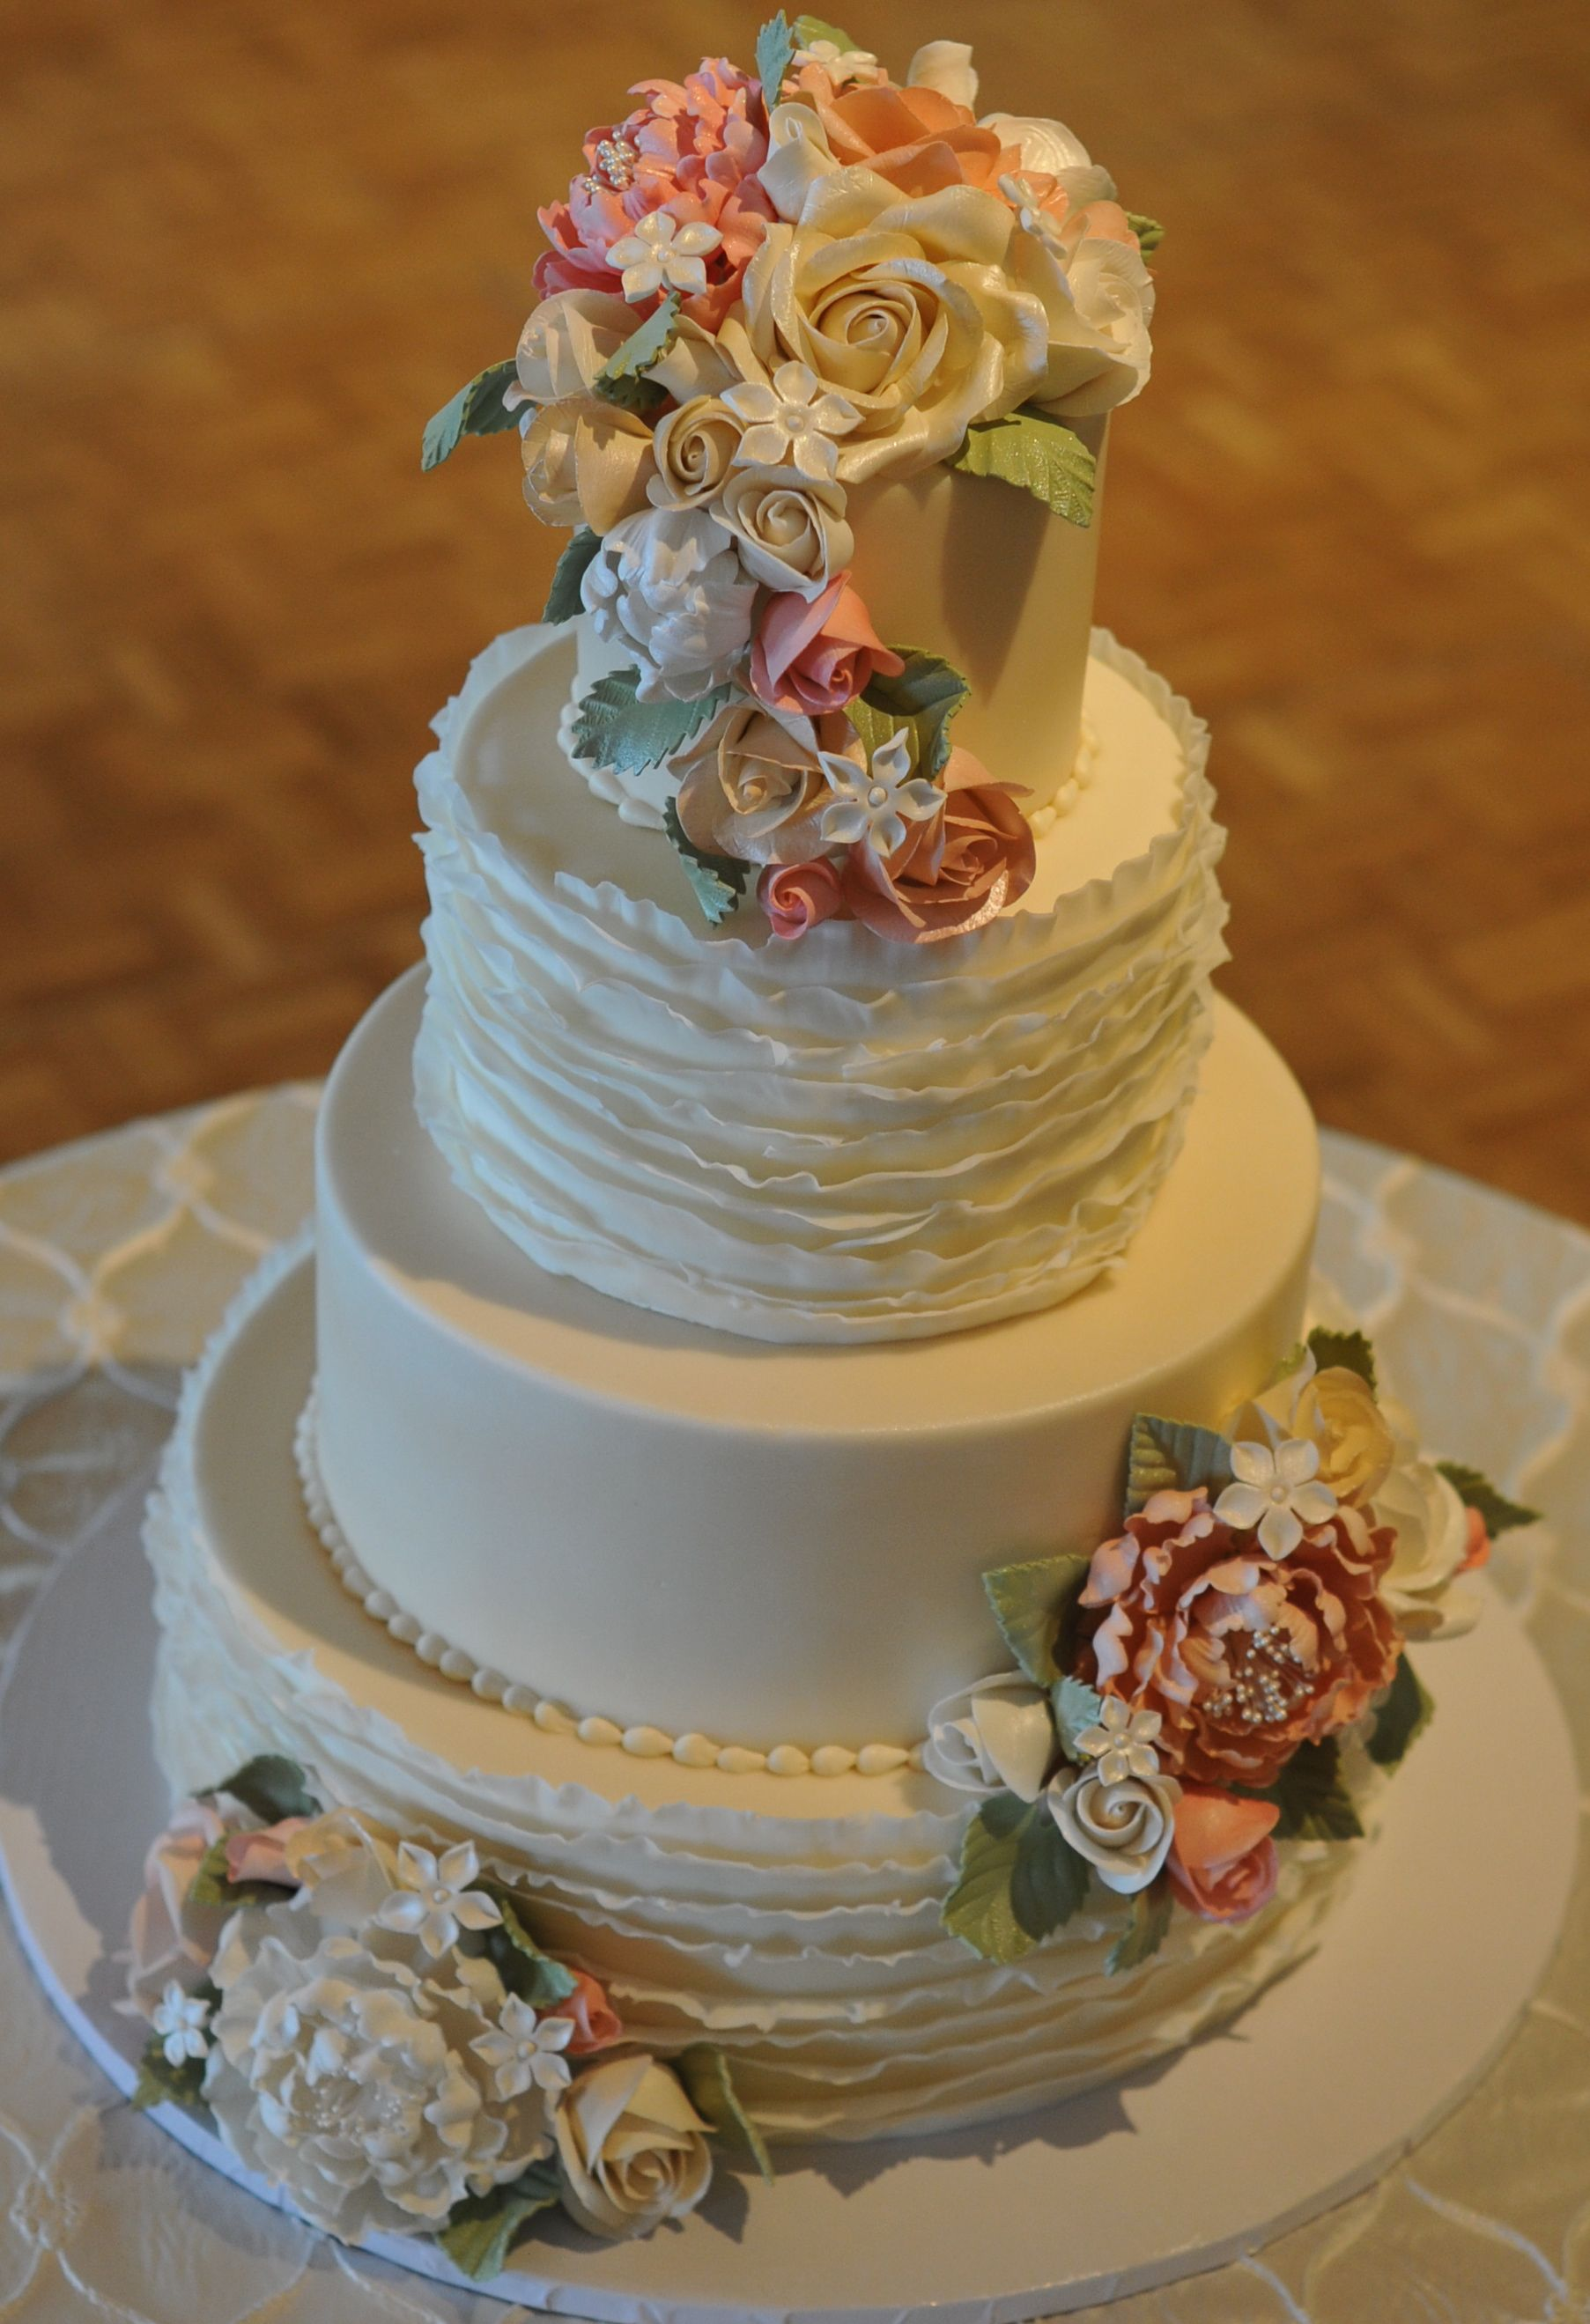 Frill with sugar flowers